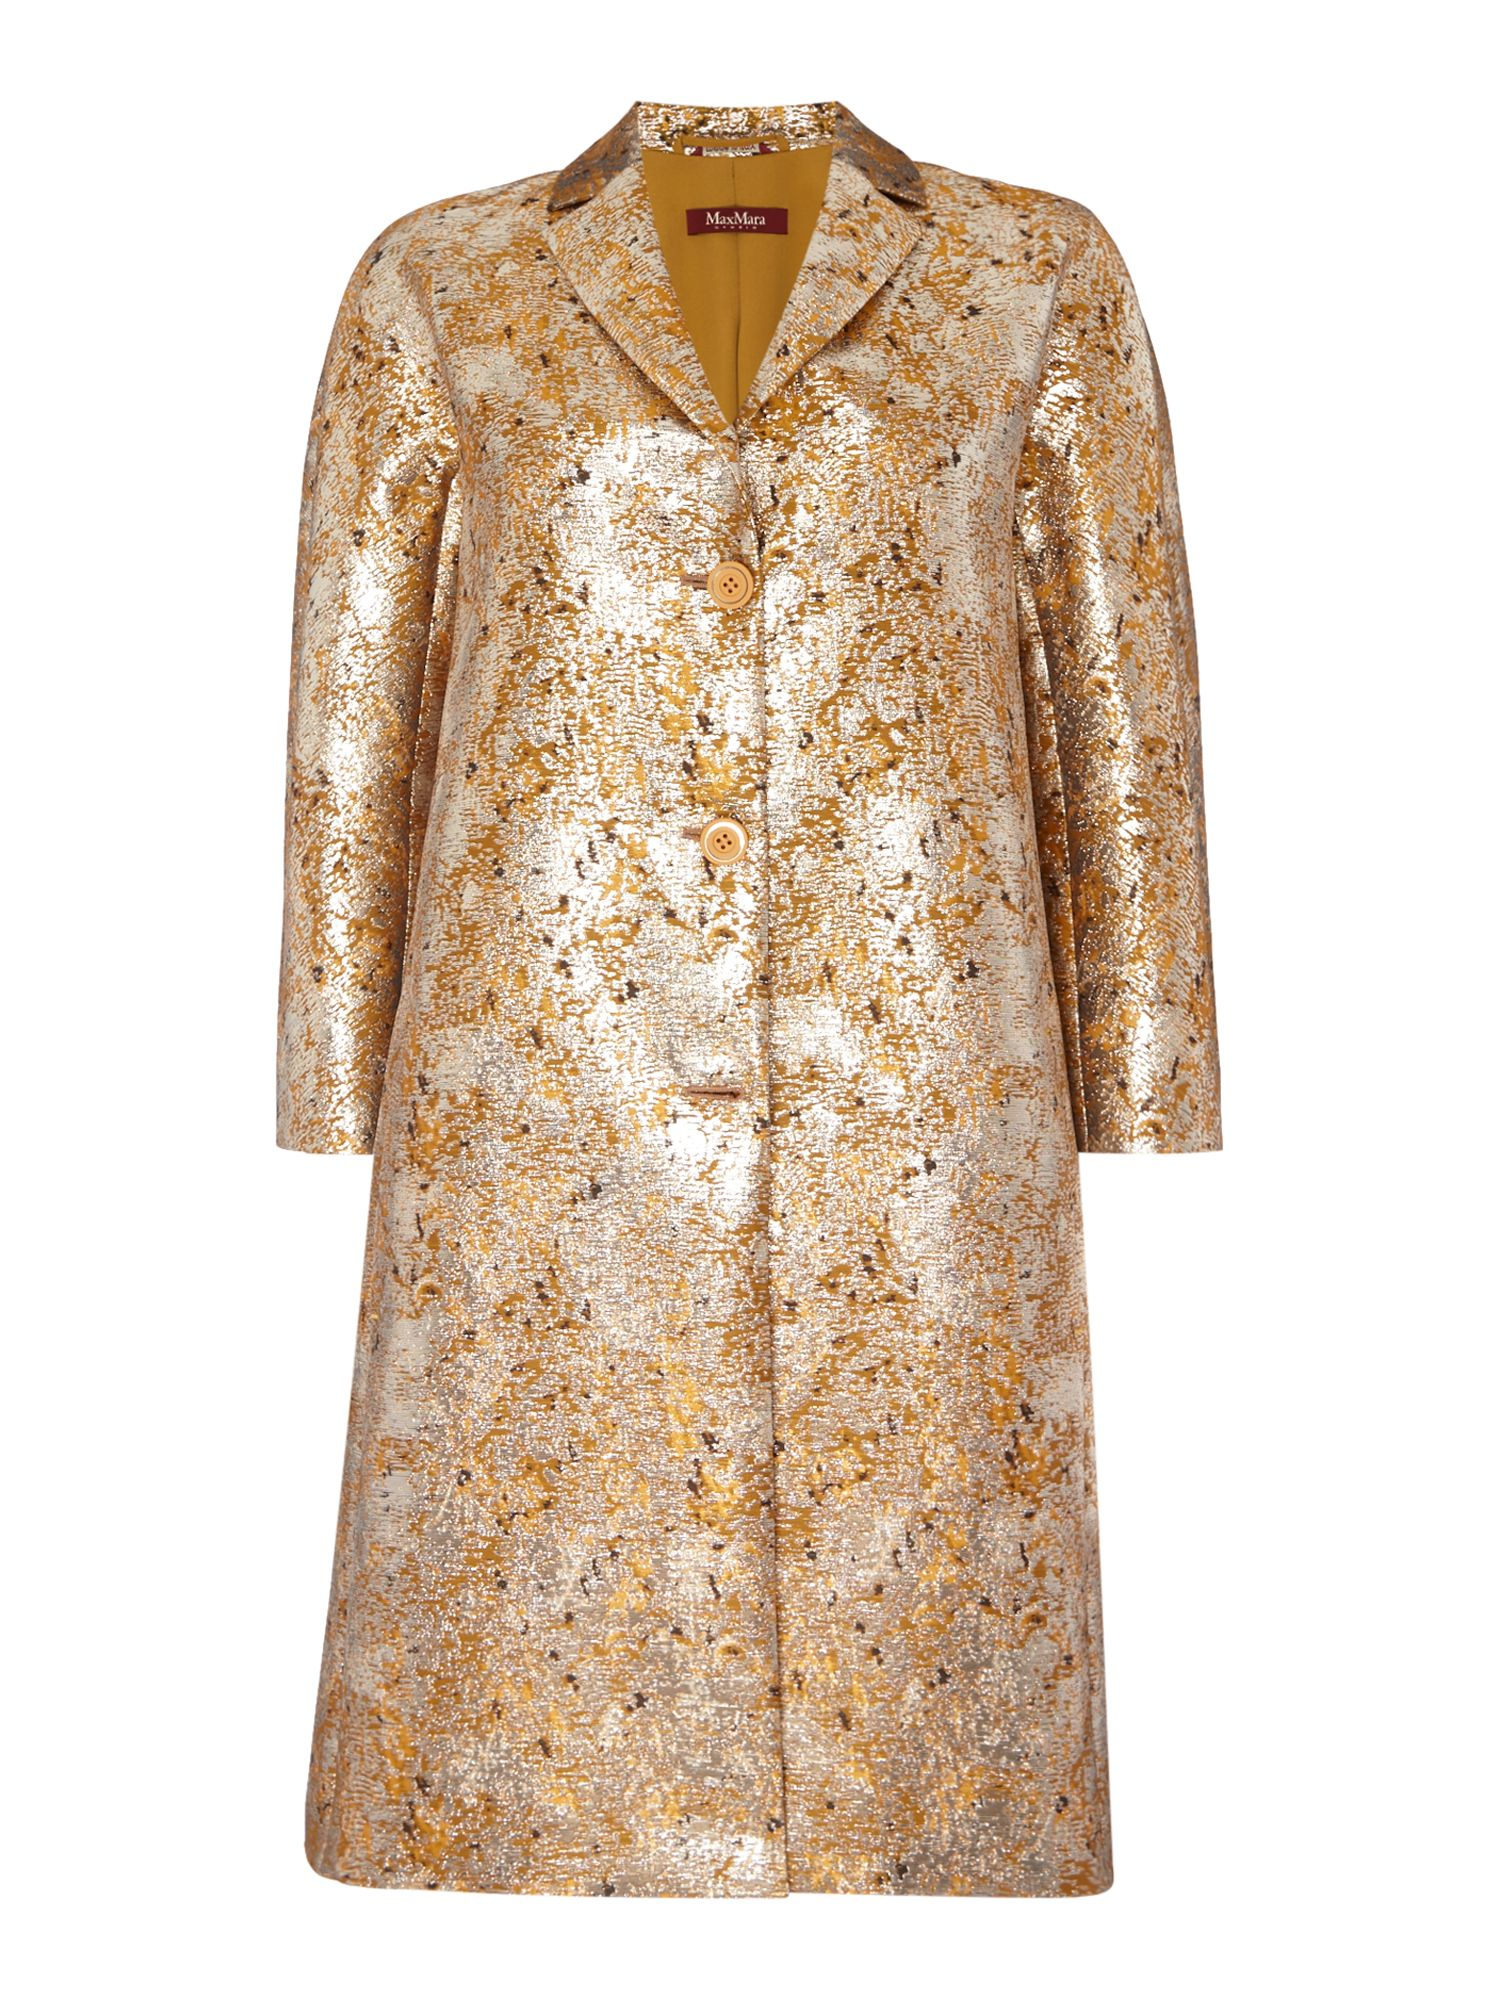 Max Mara Studio RIVALTA metalic jacquard long sleeve jacket, Gold